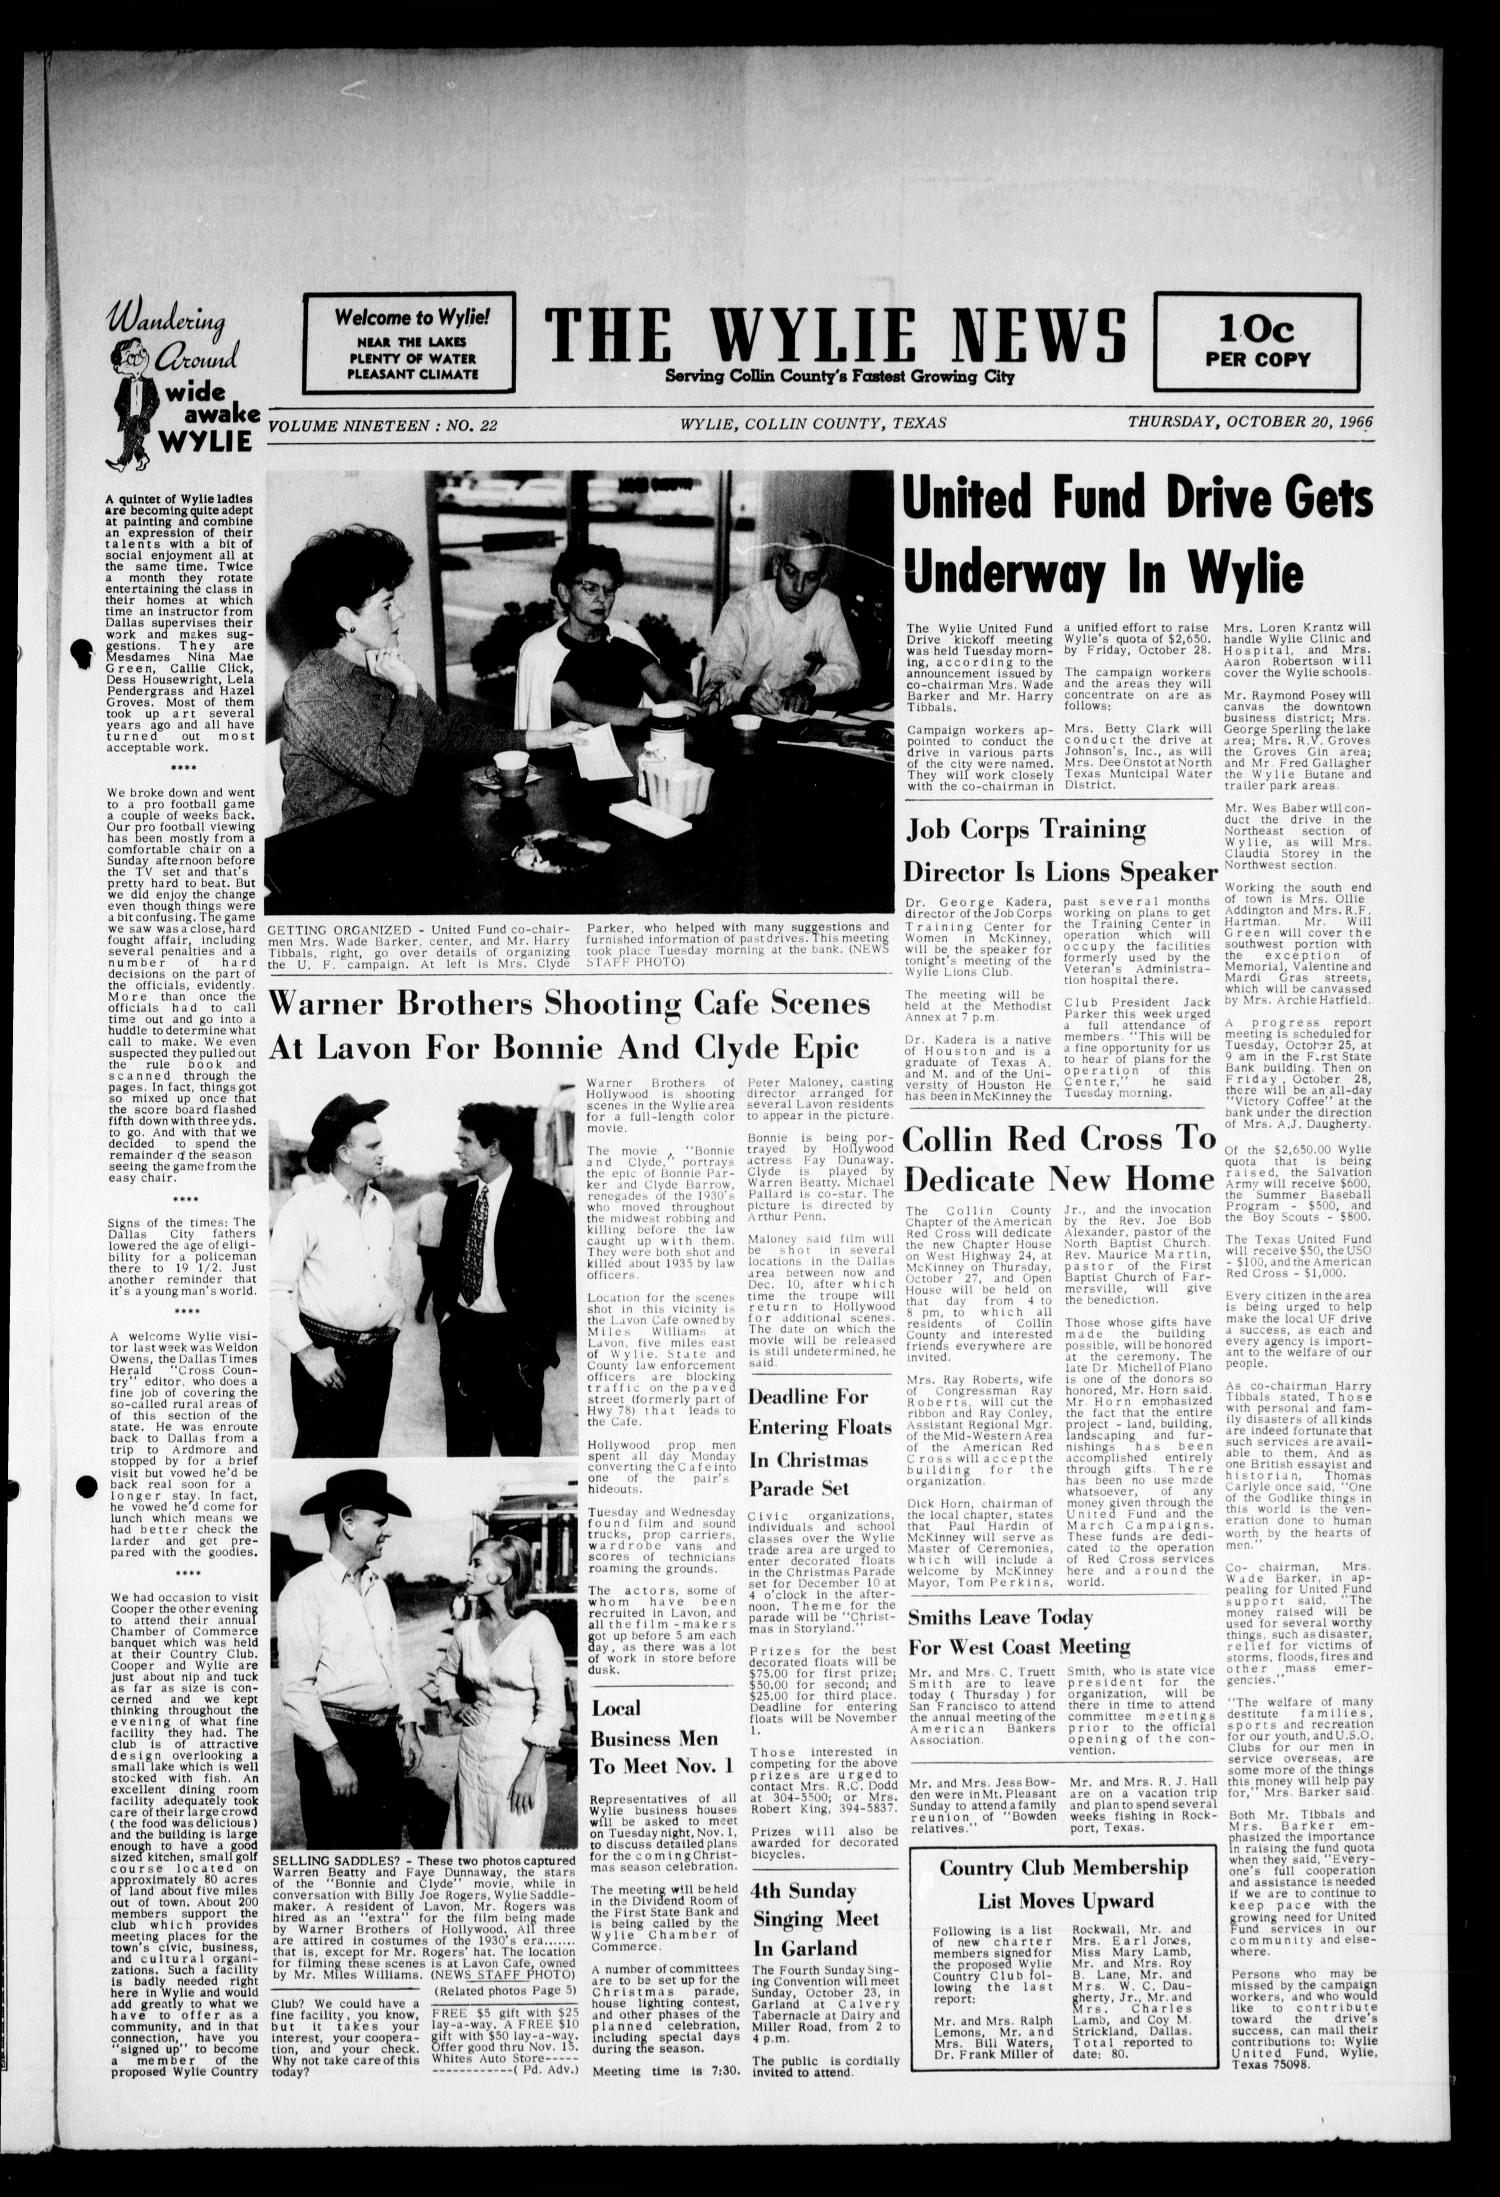 Warner Brothers Shooting Cafe Scenes at Lavon for Bonnie and Clyde Epic (October 20, 1960)